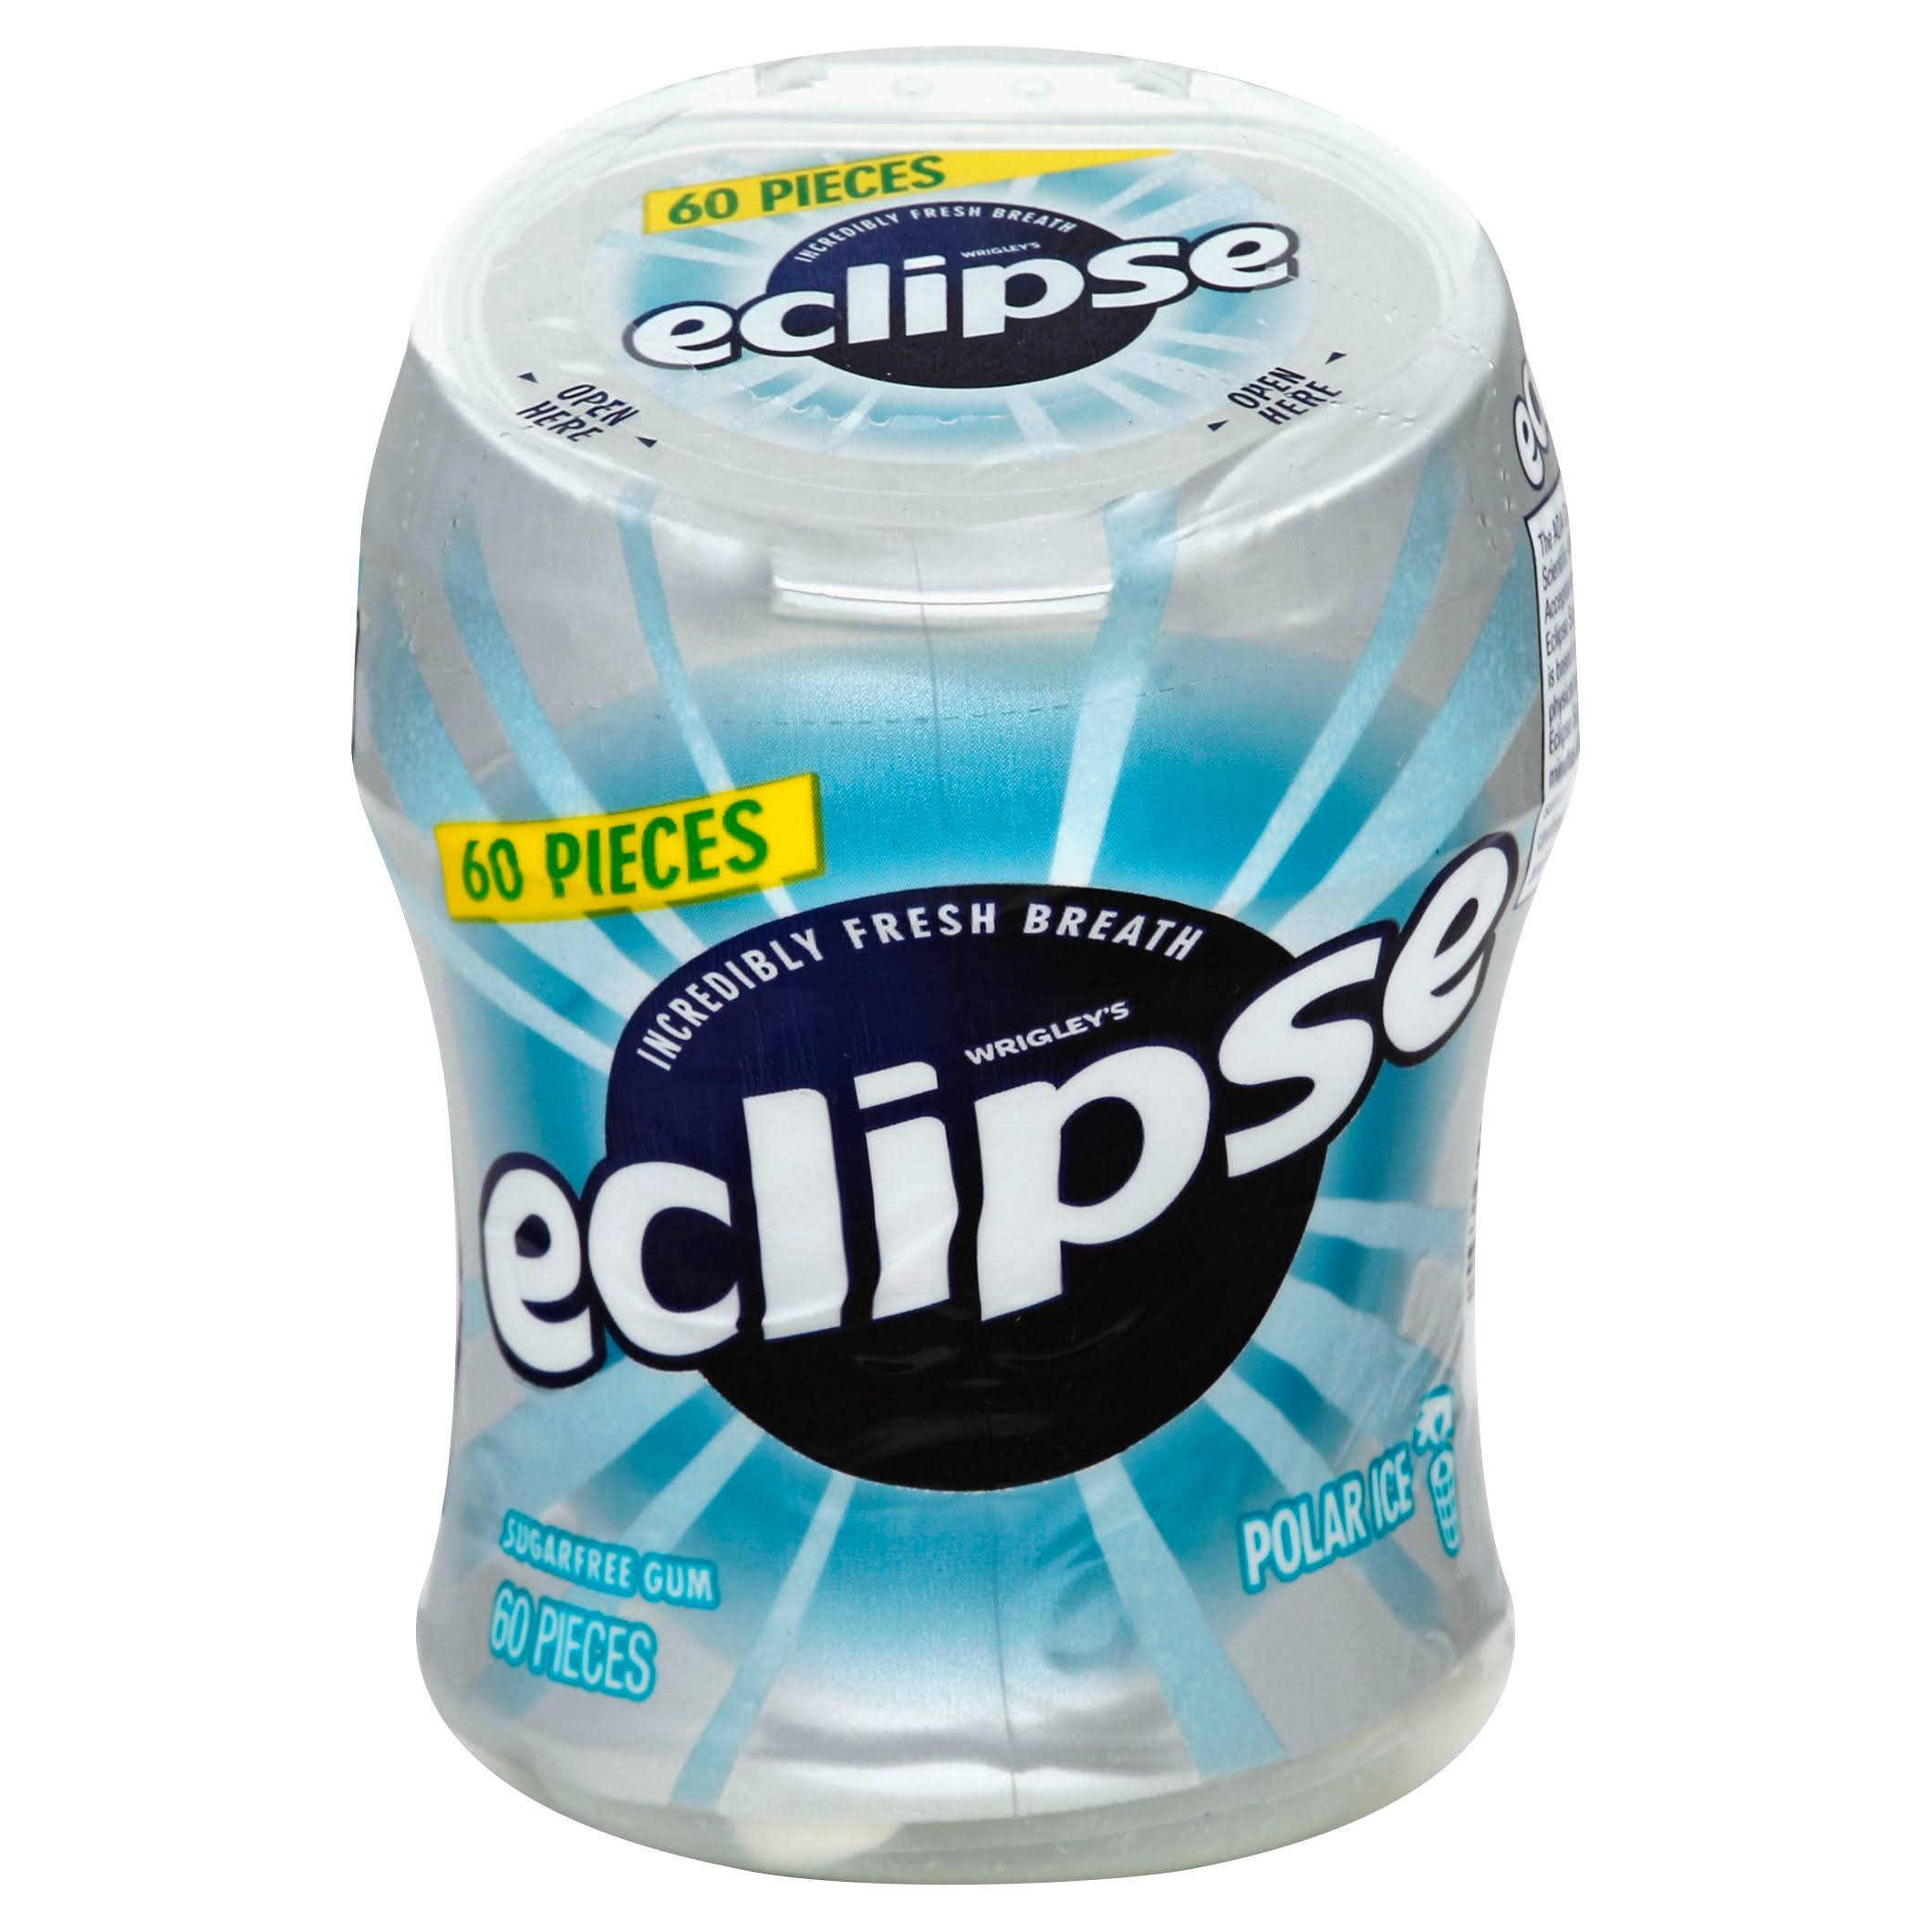 Wrigleys Eclipse Gum - Polar Ice, 83g